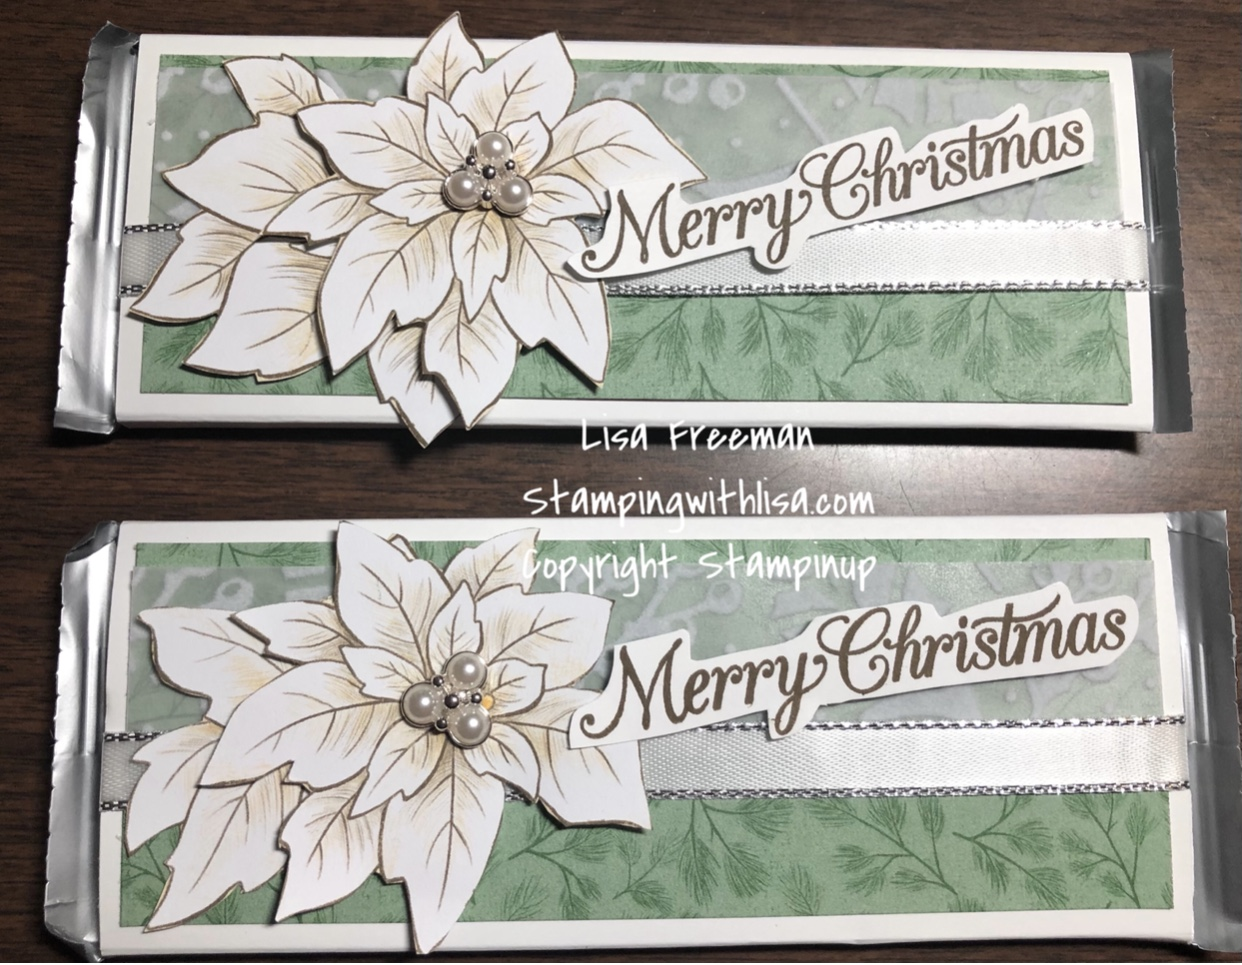 Cute Candy bar gift idea with Poinsettia place dsp